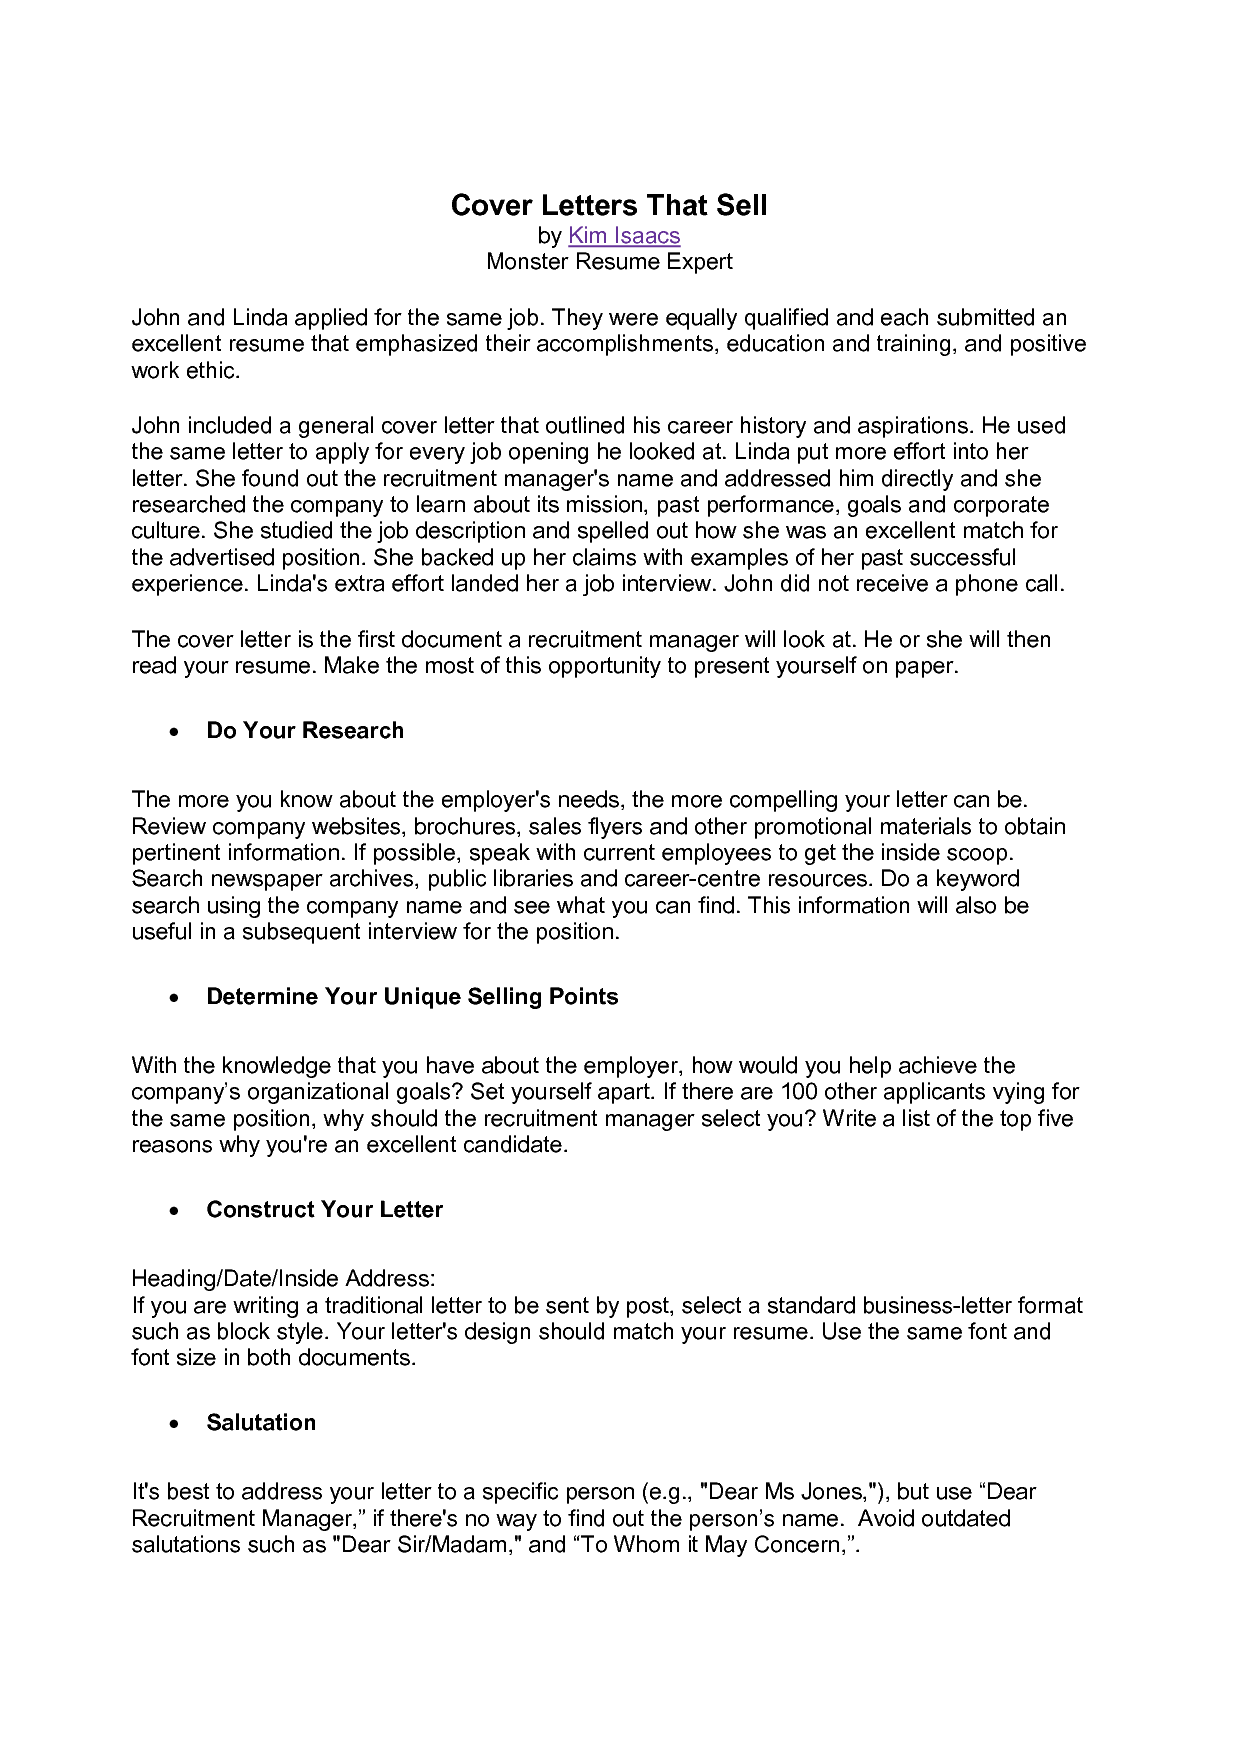 Cover Letter Template Monster